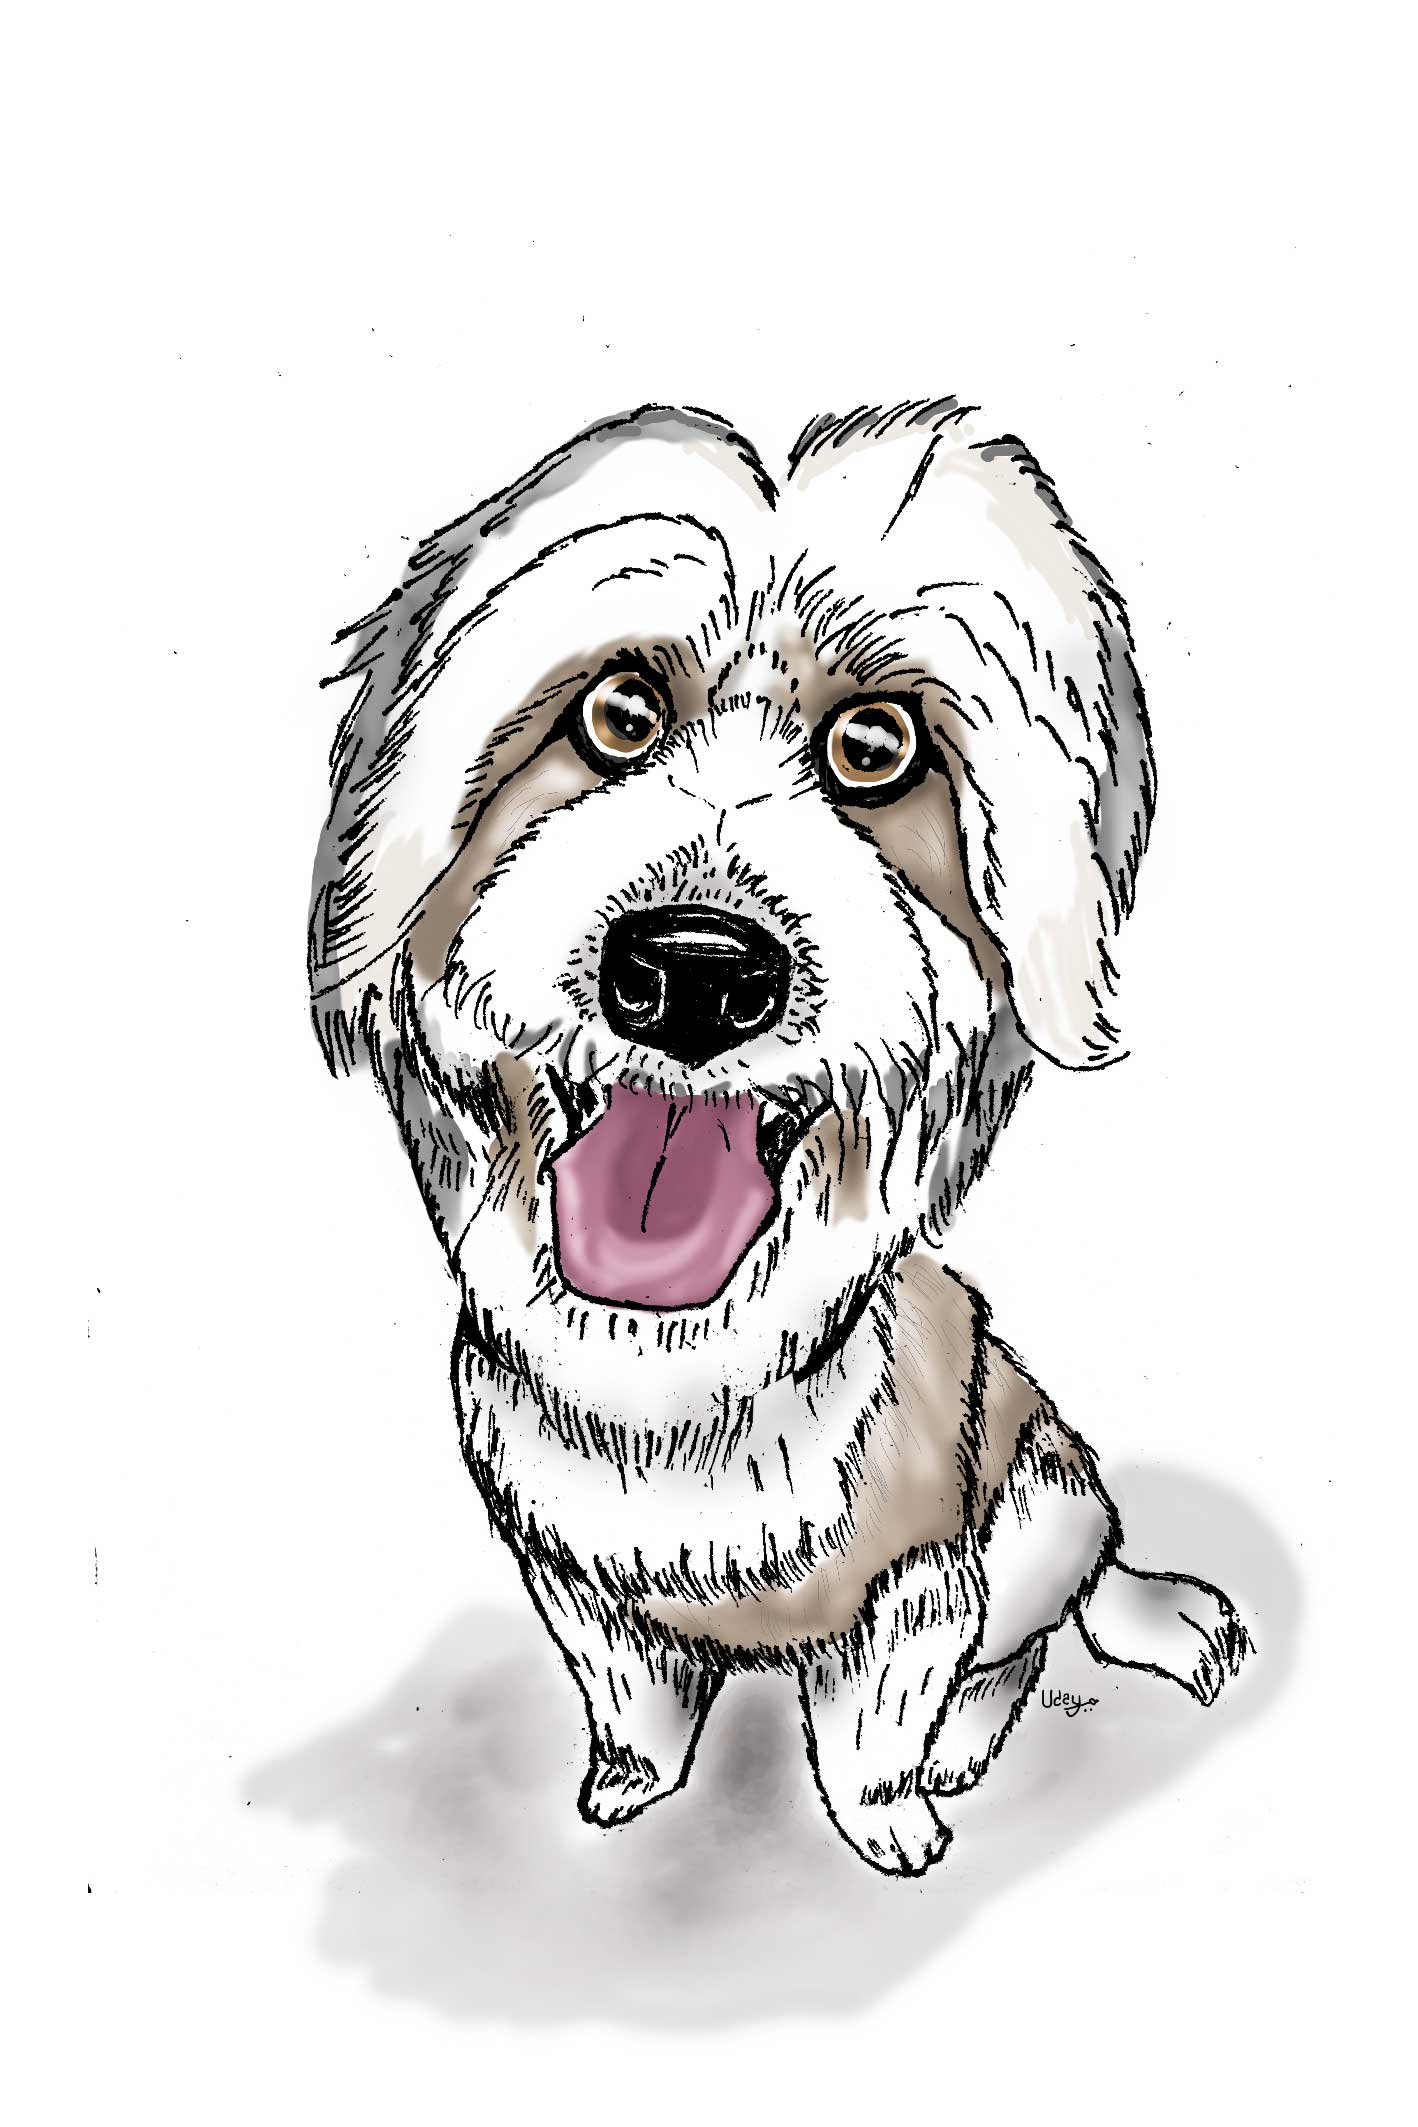 Canine caricature - Digital Painting